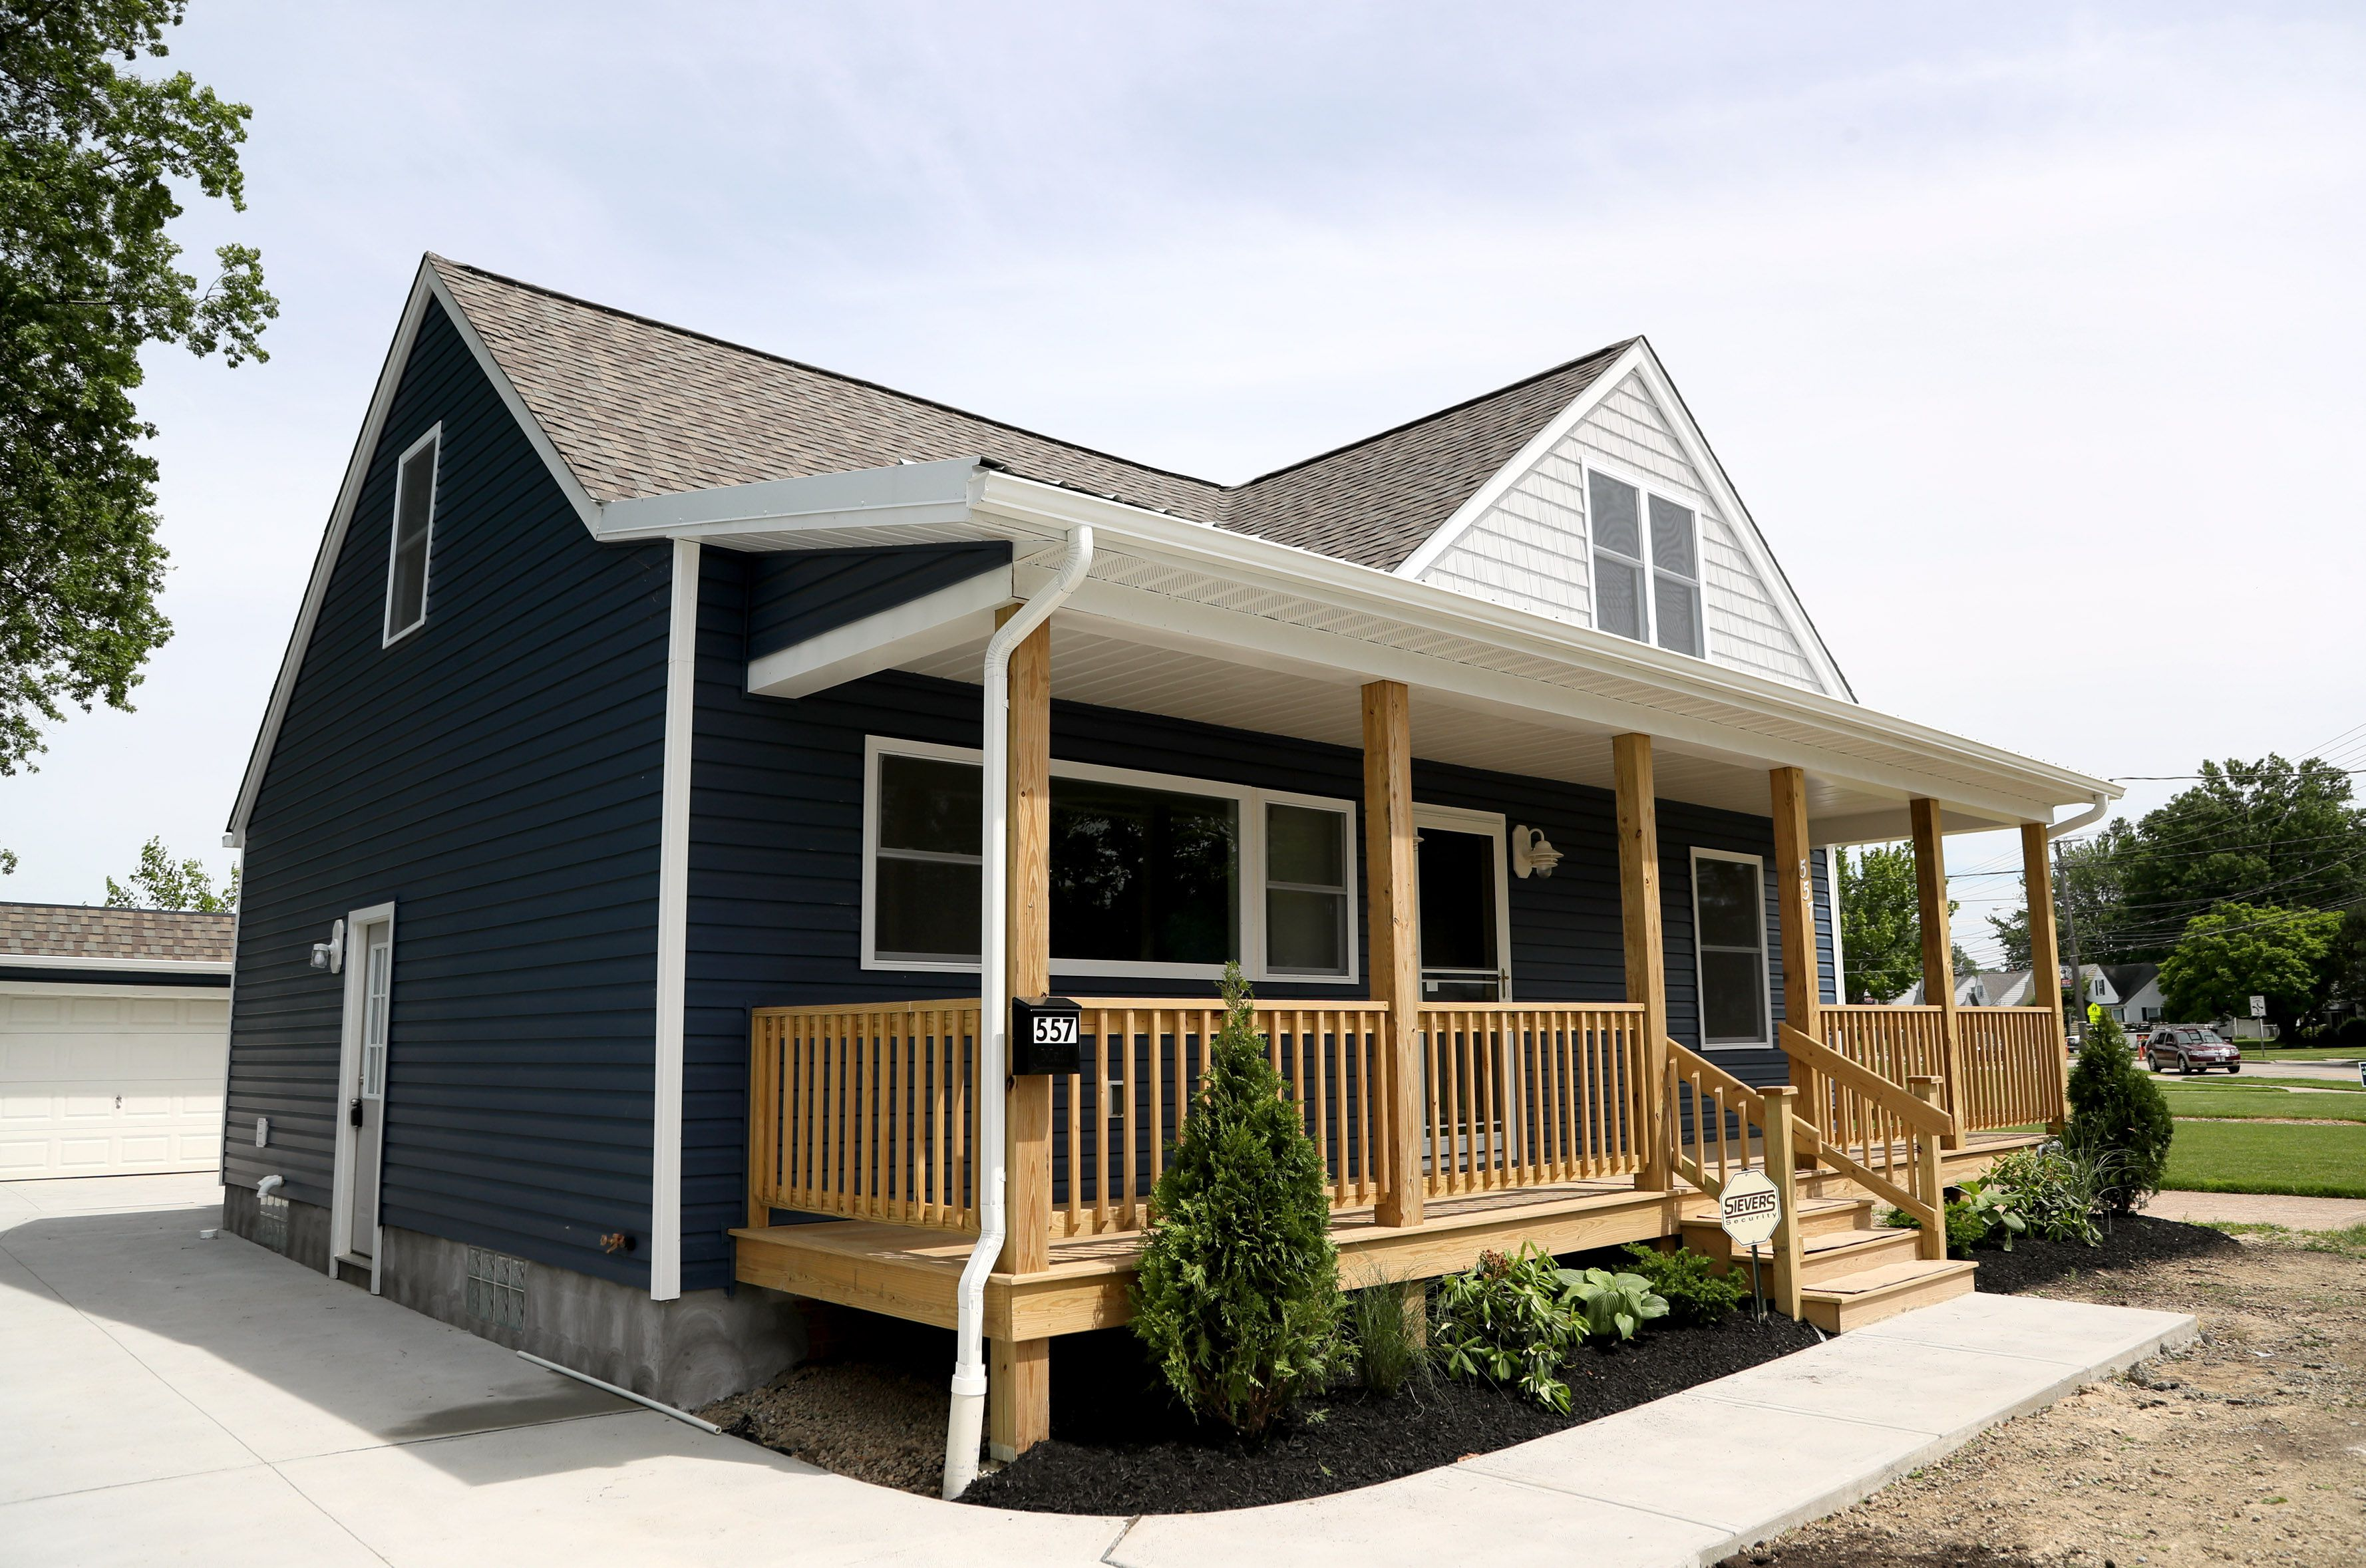 Lake County Port Authority remodels 1950s bungalow to spur ... on 1920 style home plans, 1950 home design, retro house plans, minimal traditional house plans, 1950 home interiors, 1950 style home plans,